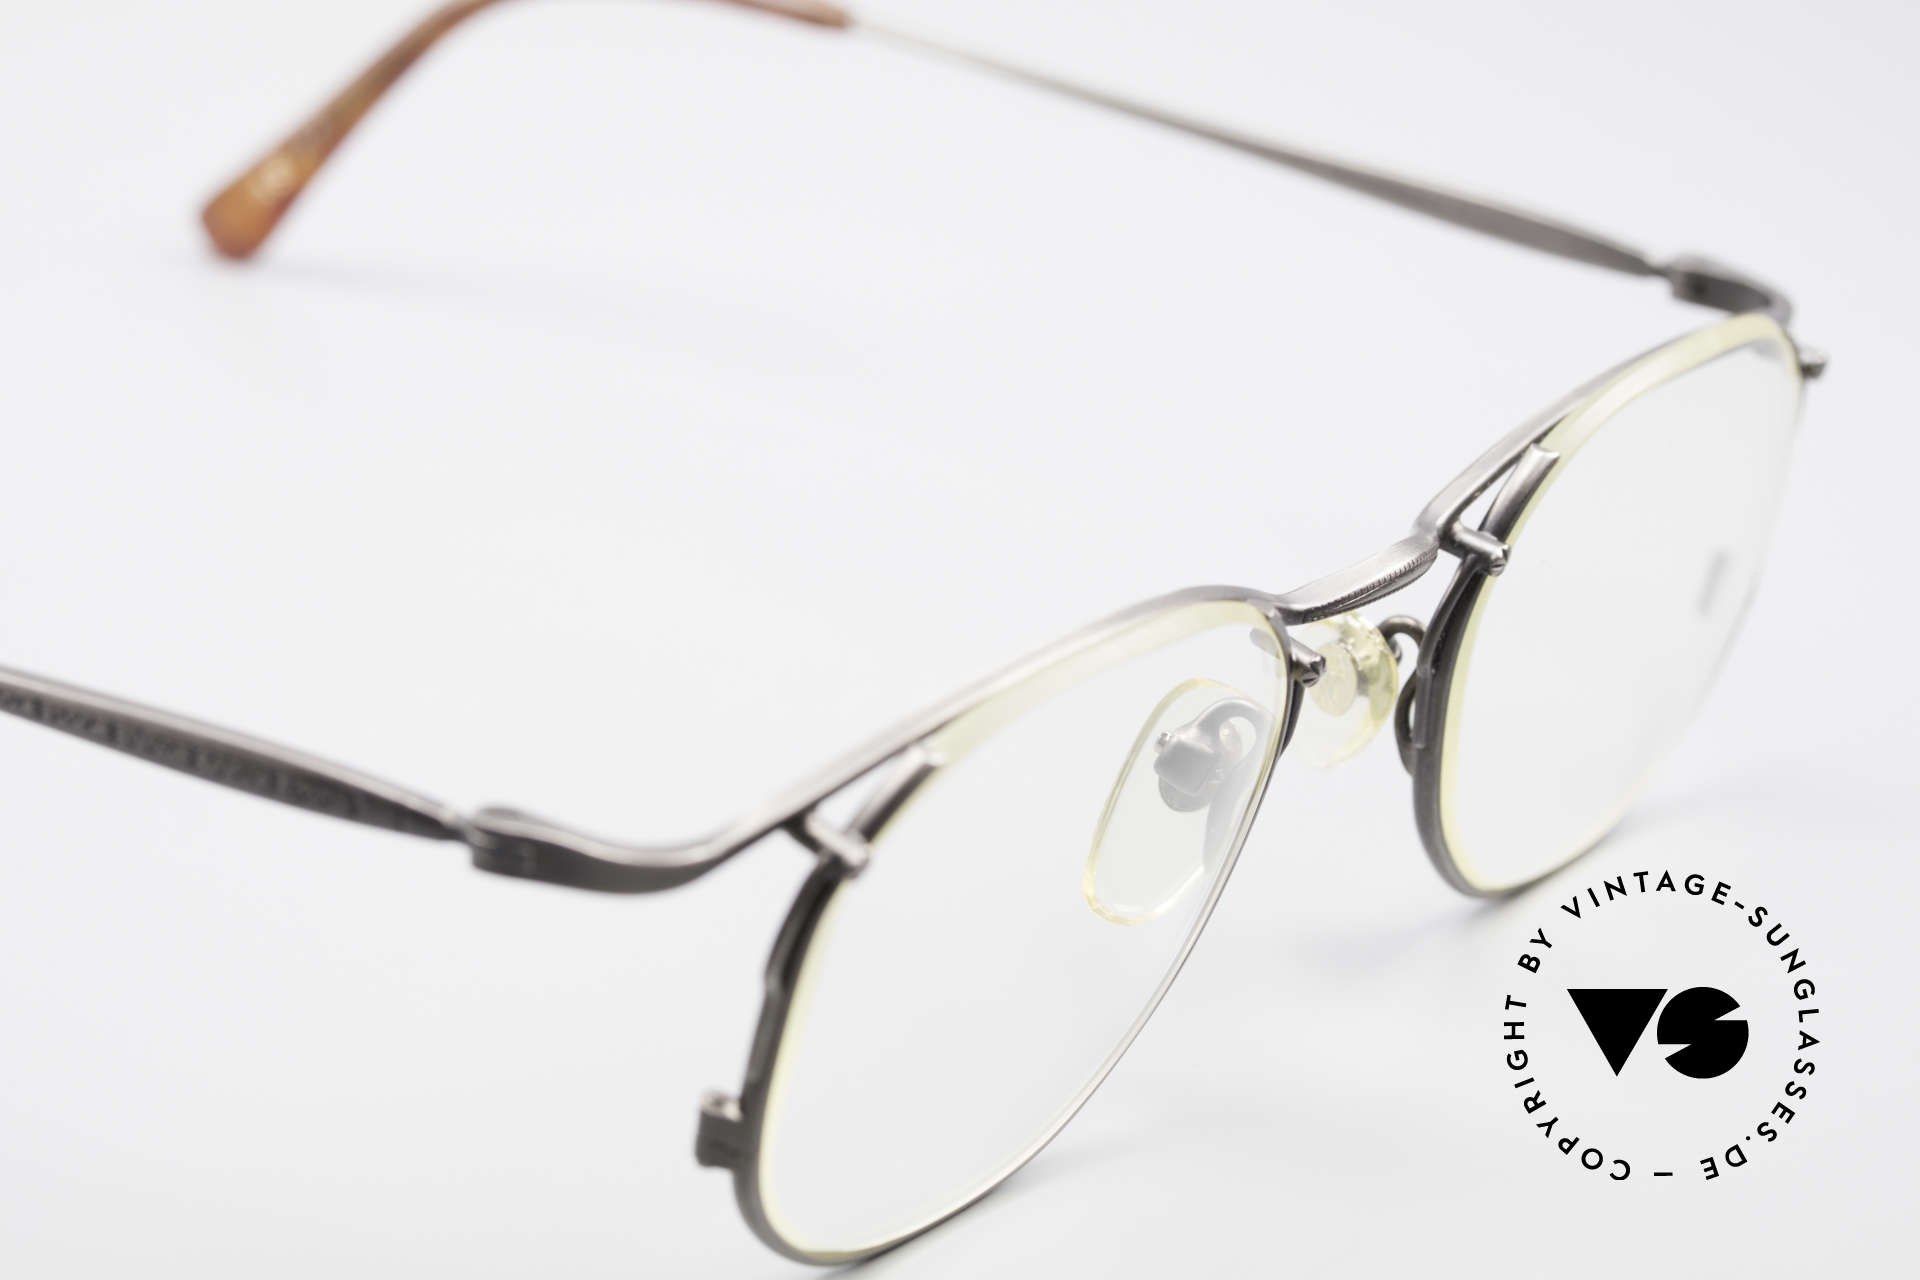 Matsuda 2856 Extraordinary Vintage Frame, rare, 20 years old single item, NO RETRO GLASSES, Made for Men and Women